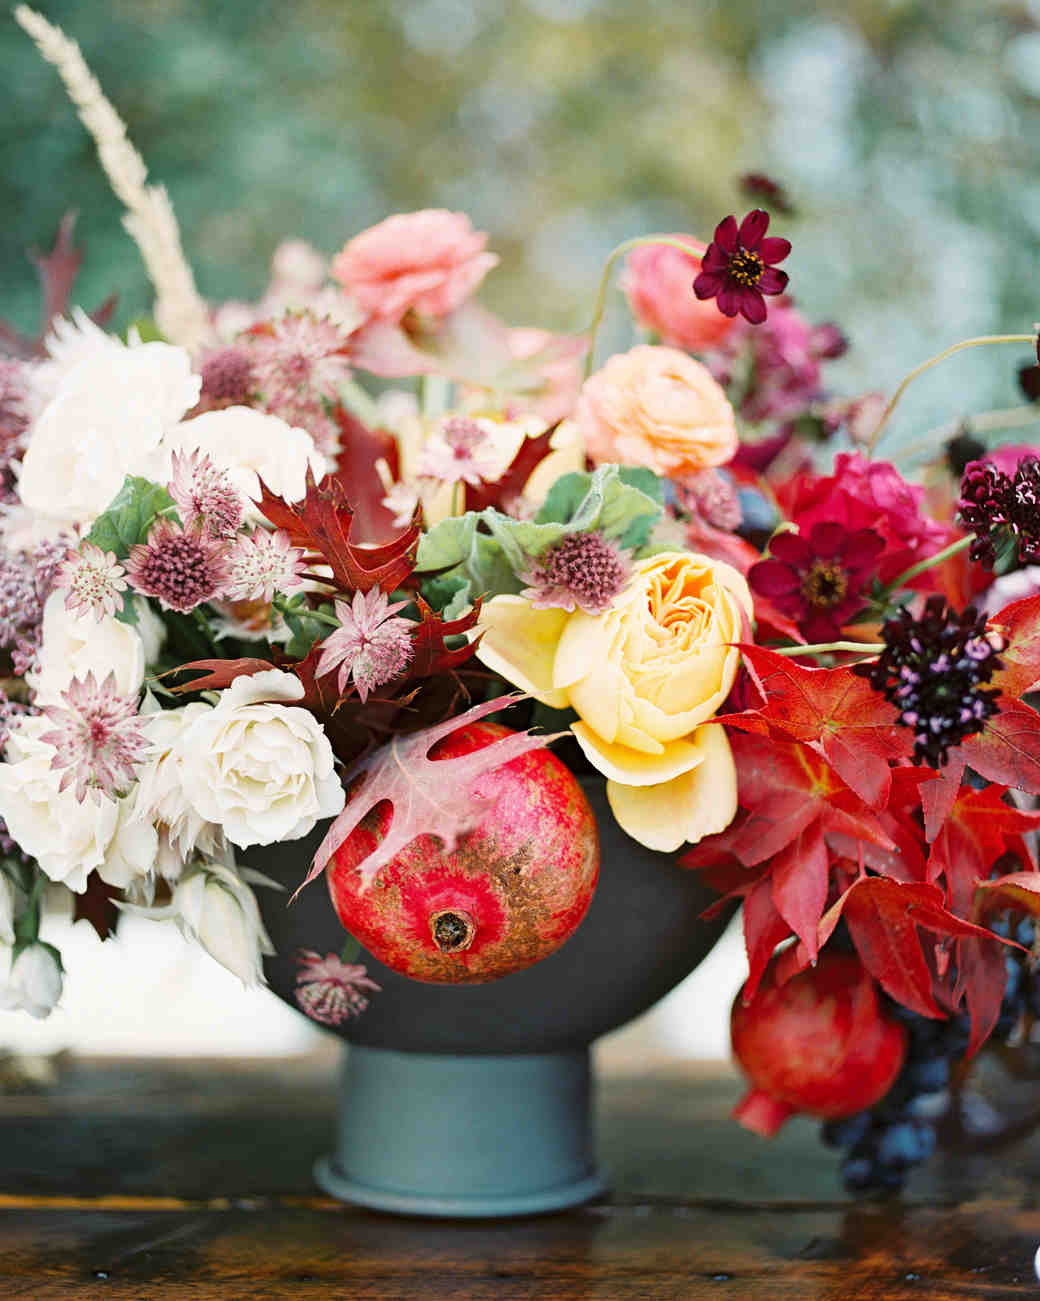 Fall Centerpiece with Foliage, Flowers, and Fruit